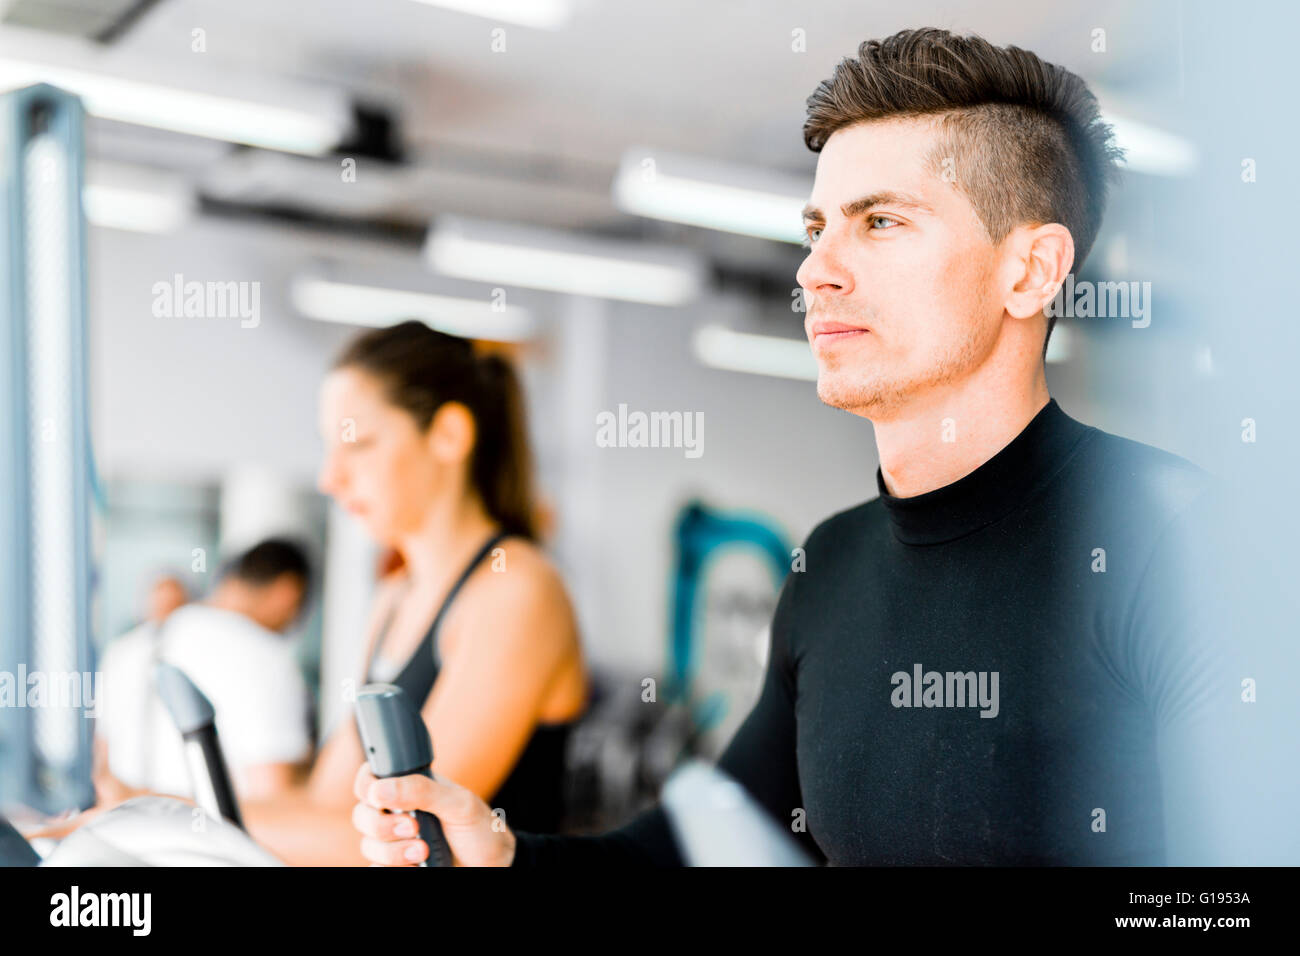 Group of healthy young people using treadmill and elliptical trainer in a gym - Stock Image